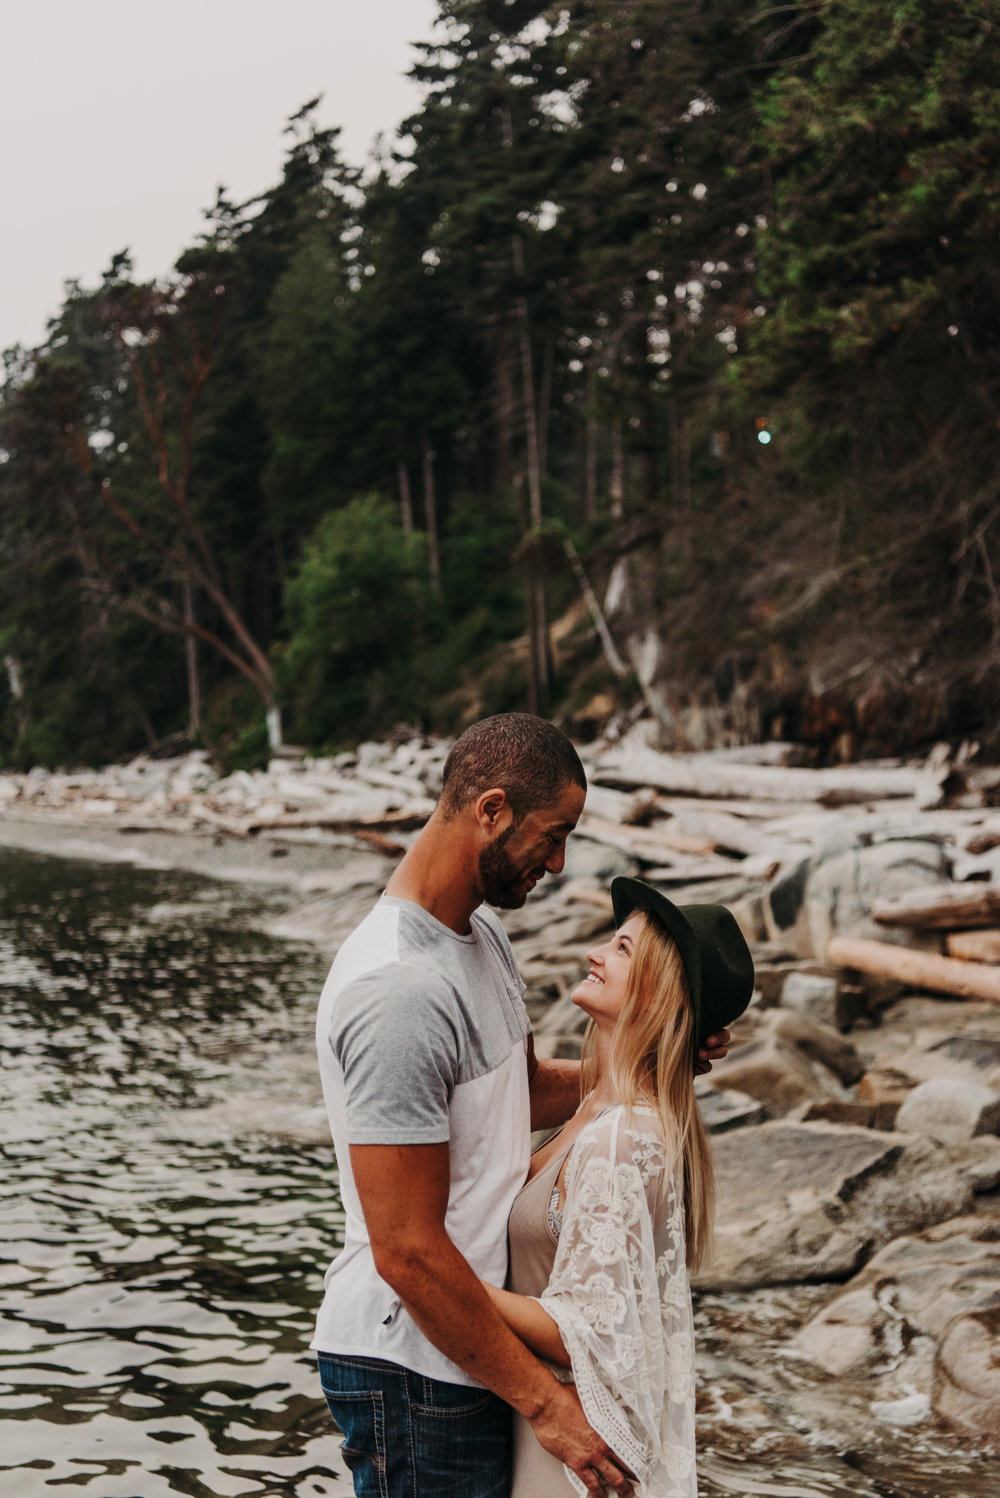 Sierra & Tyler Summer Beach Couples Session - Laura Olson Photography - Sunshine Coast BC Photographer-2429.jpg